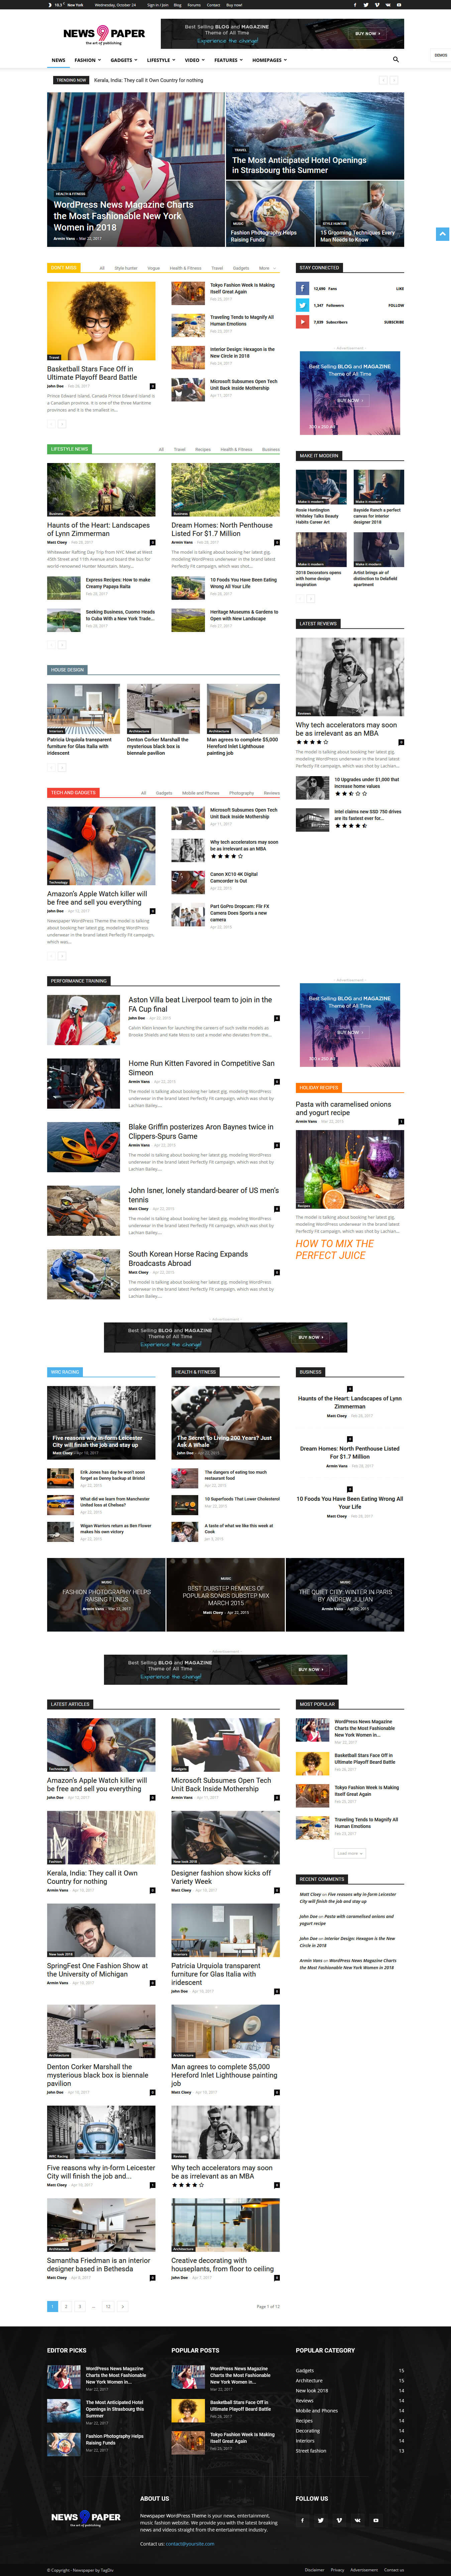 newspaper best premium gdpr friendly wordpress theme - 10+ Best Premium GDPR Friendly WordPress Themes